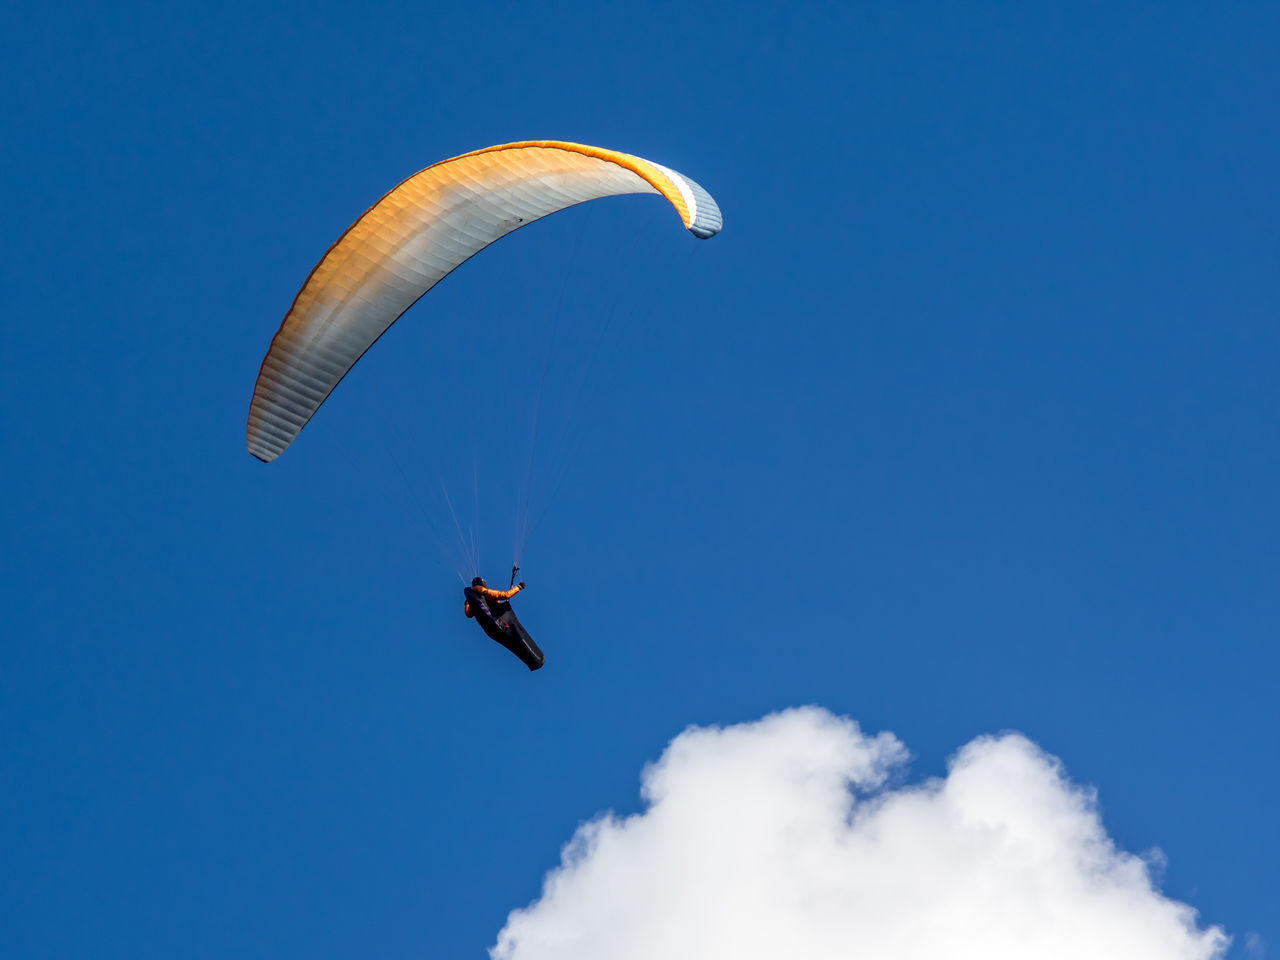 mid-air, flying, parachute, extreme sports, adventure, exhilaration, paragliding, real people, low angle view, gliding, blue, leisure activity, one person, freedom, skydiving, outdoors, sky, day, sport, jumping, lifestyles, clear sky, nature, stunt person, people